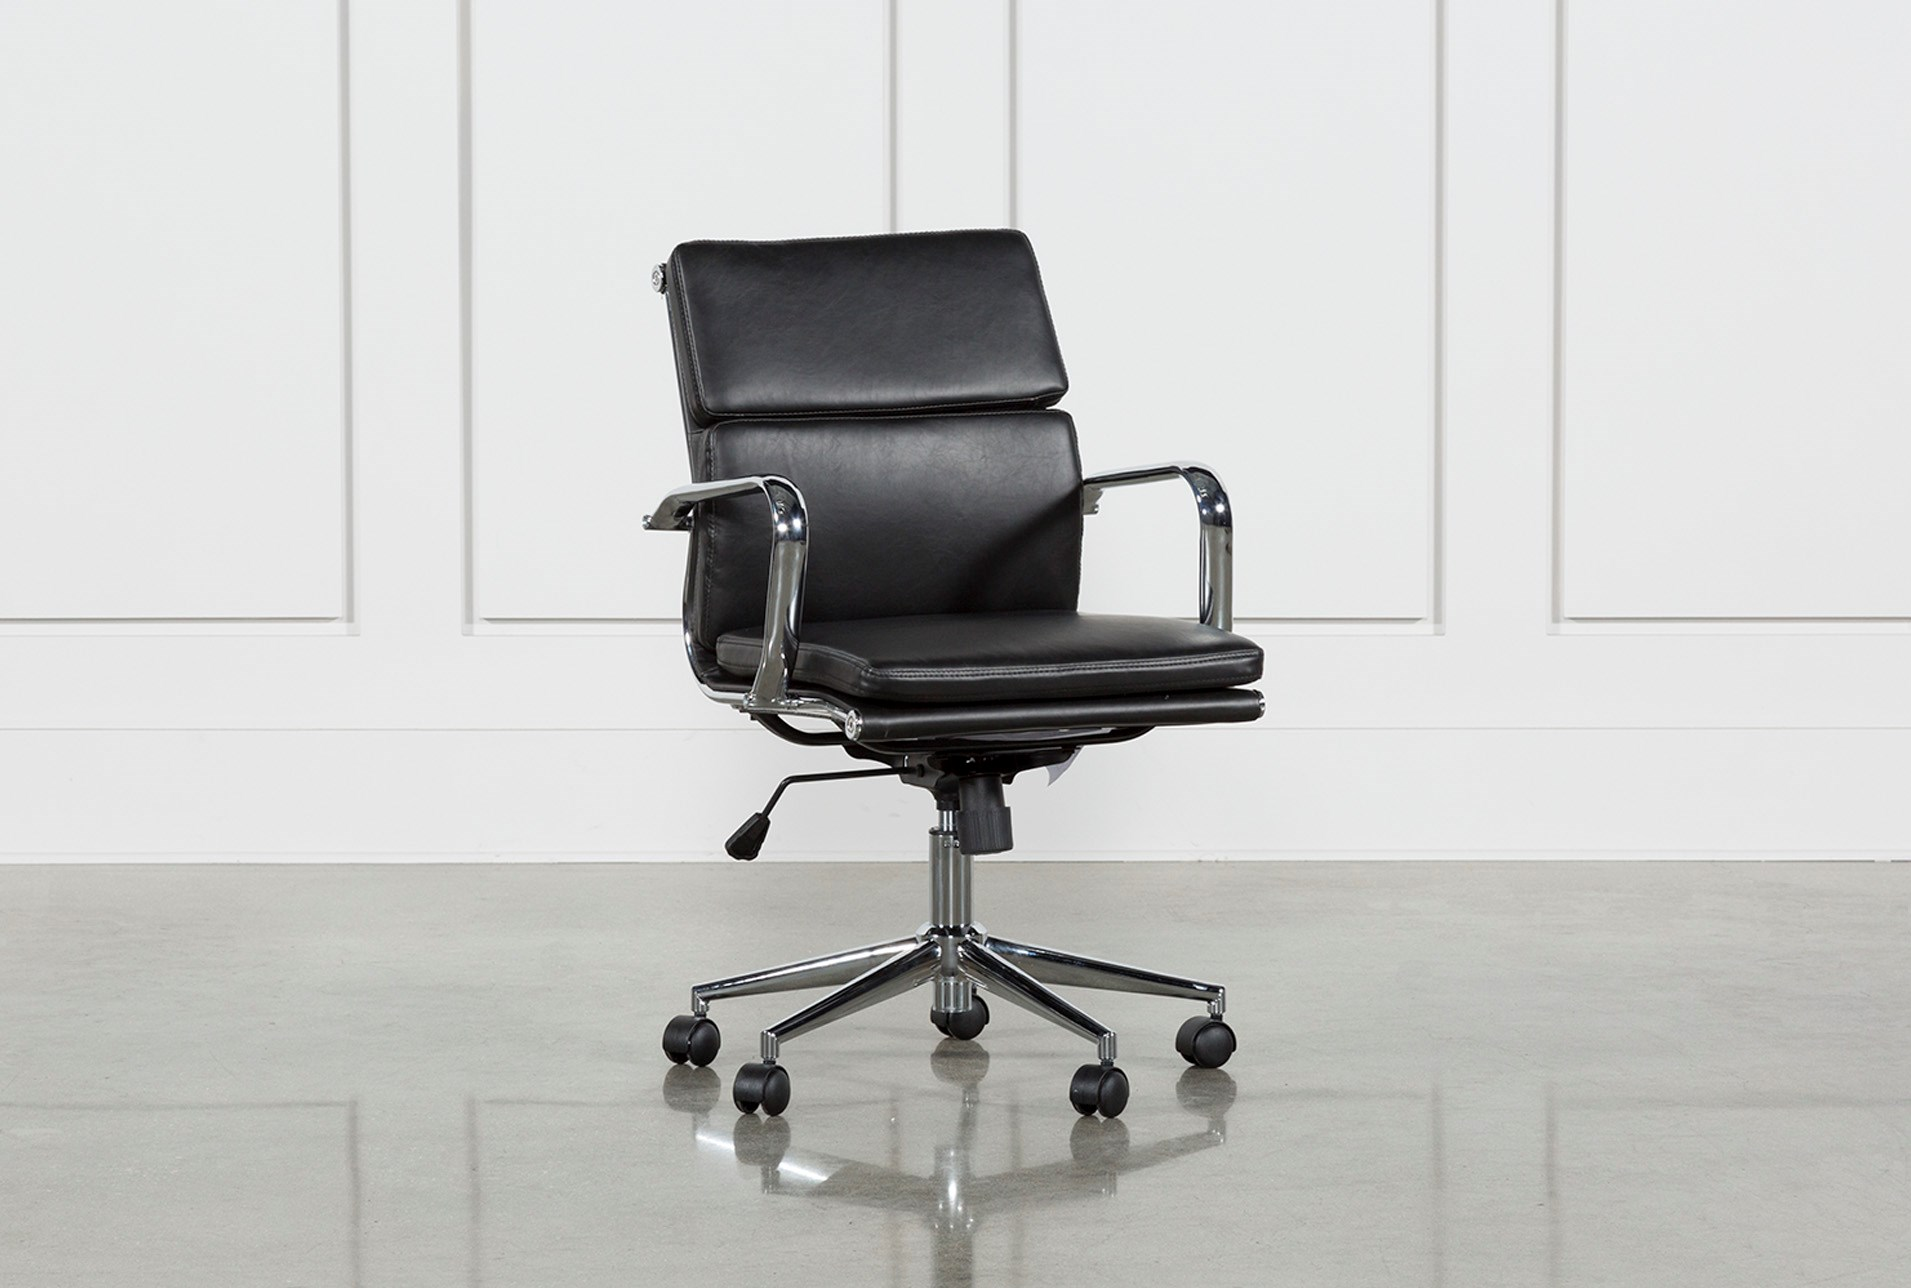 office chair back view. Moby Black Low Back Office Chair (Qty: 1) Has Been Successfully Added To Your Cart. View A